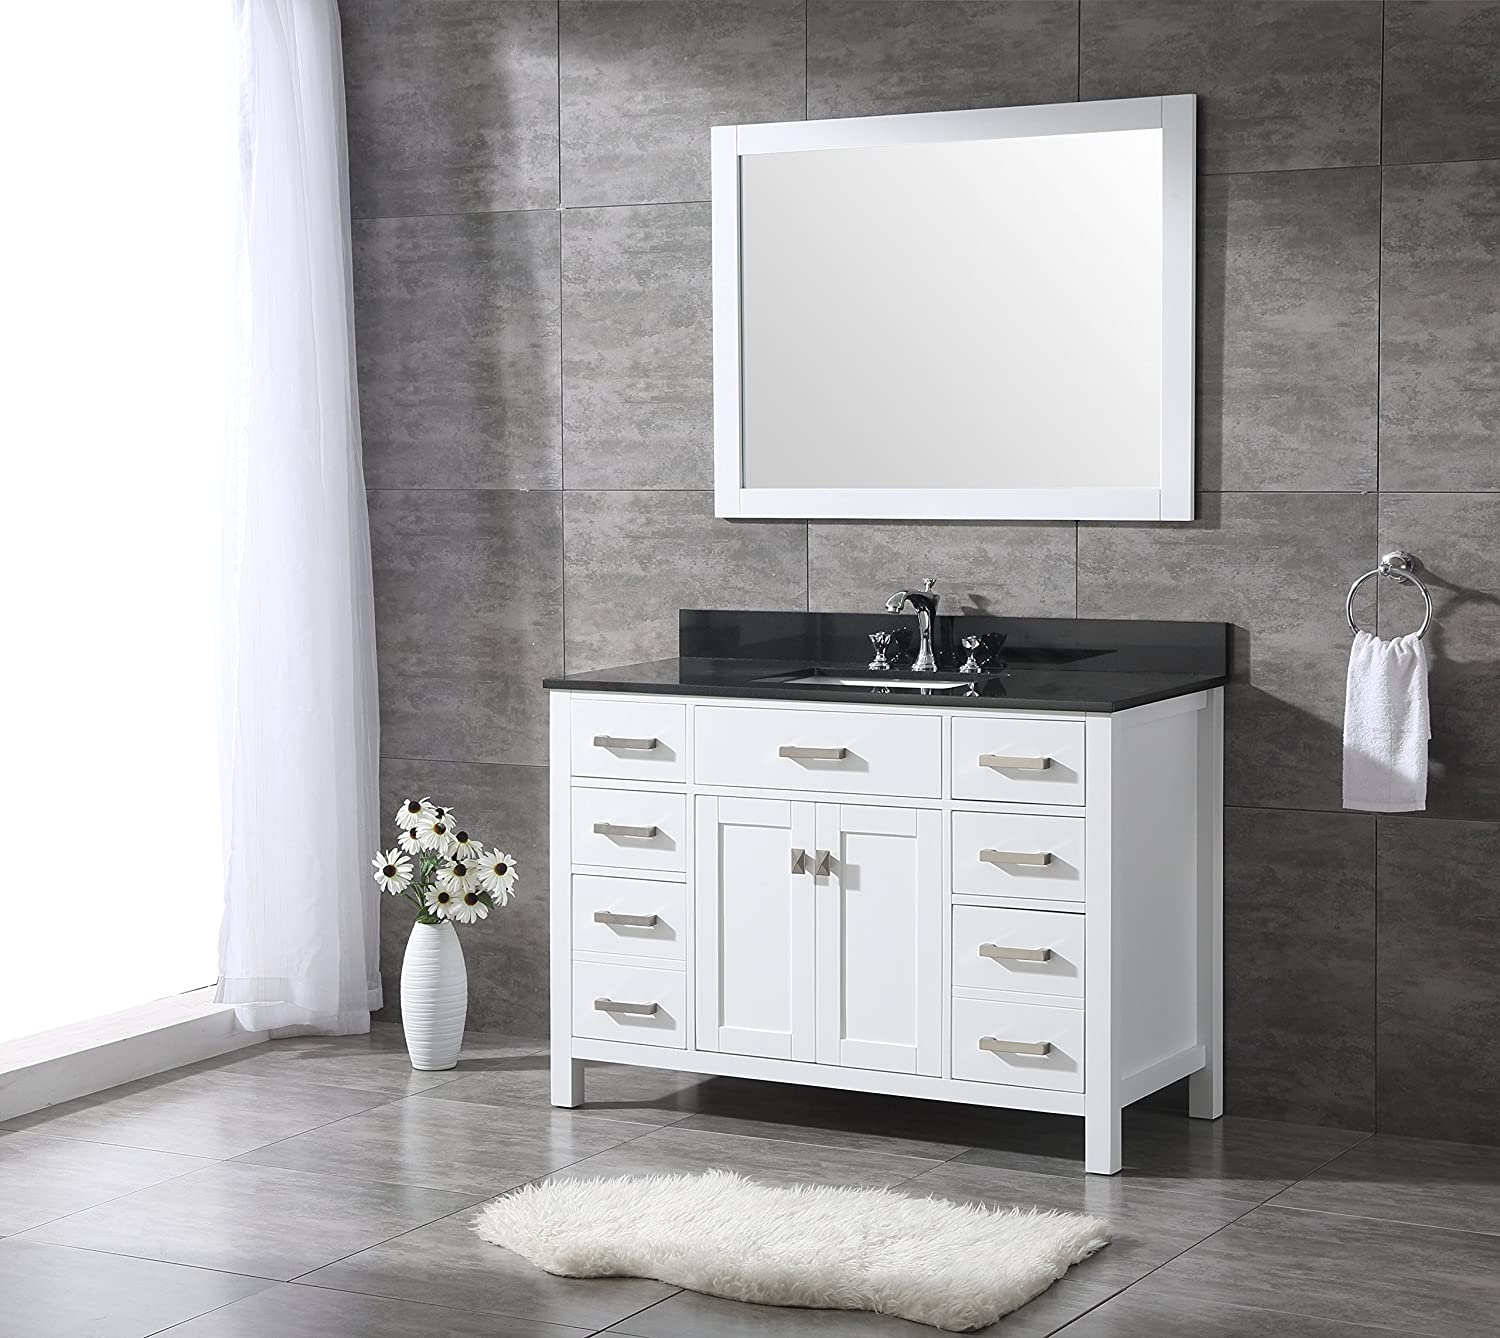 All-Wood Diamond White Shaker Vanity – Complete 48-inch, Black Granite Top